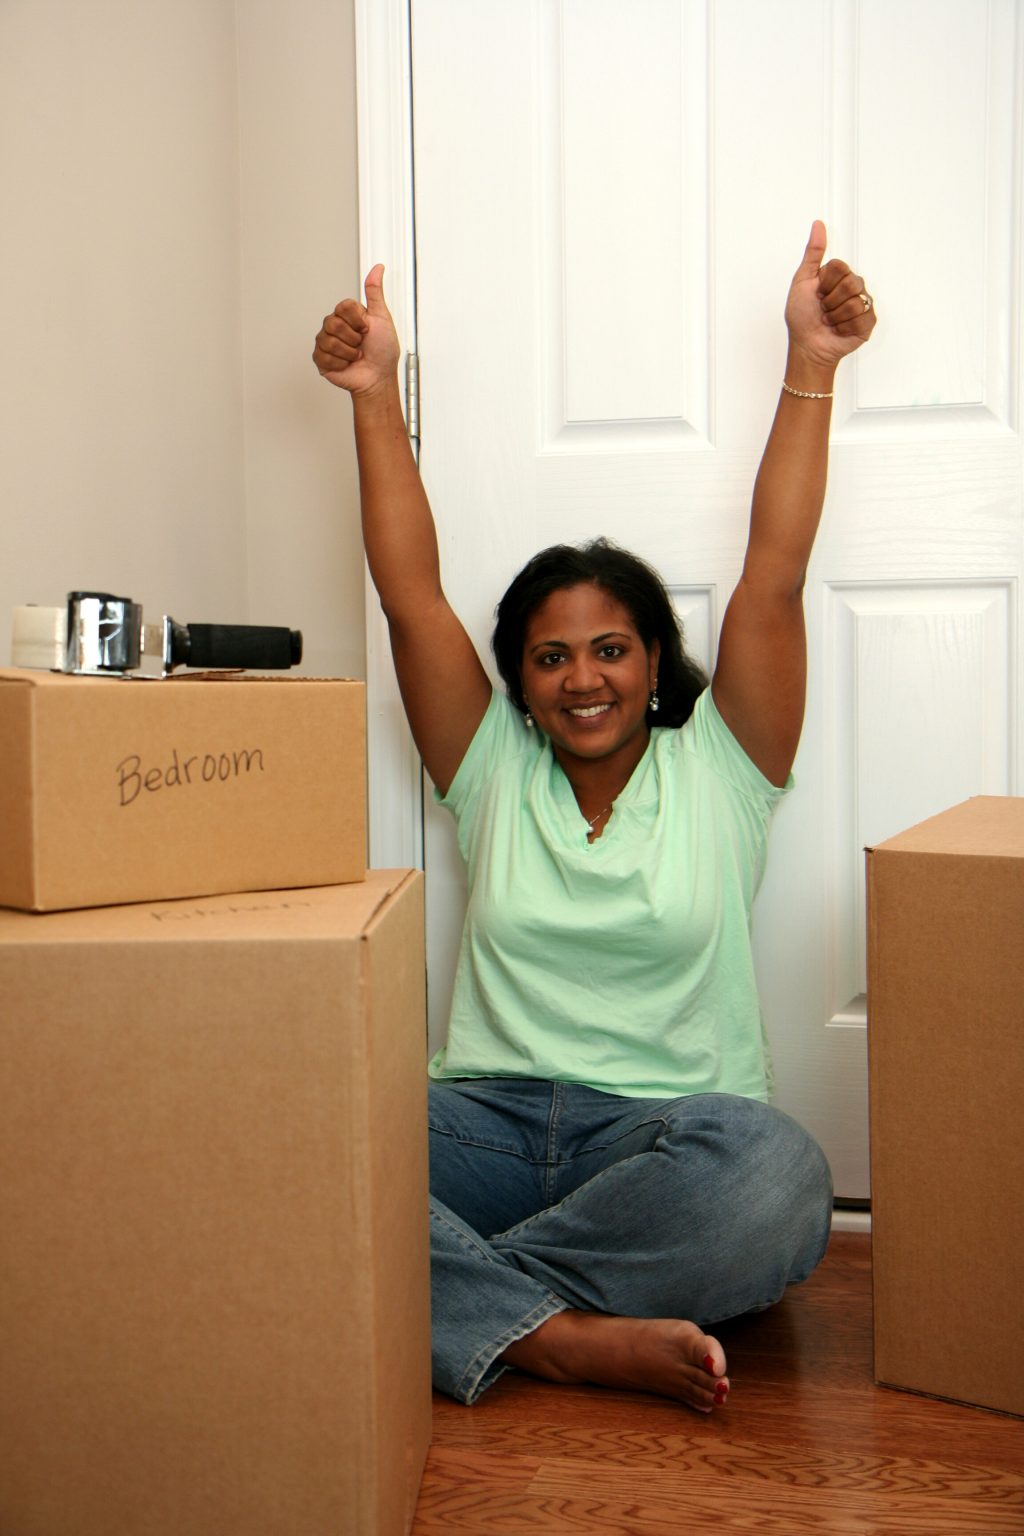 5 Ways to Make Packing for a Move Easier